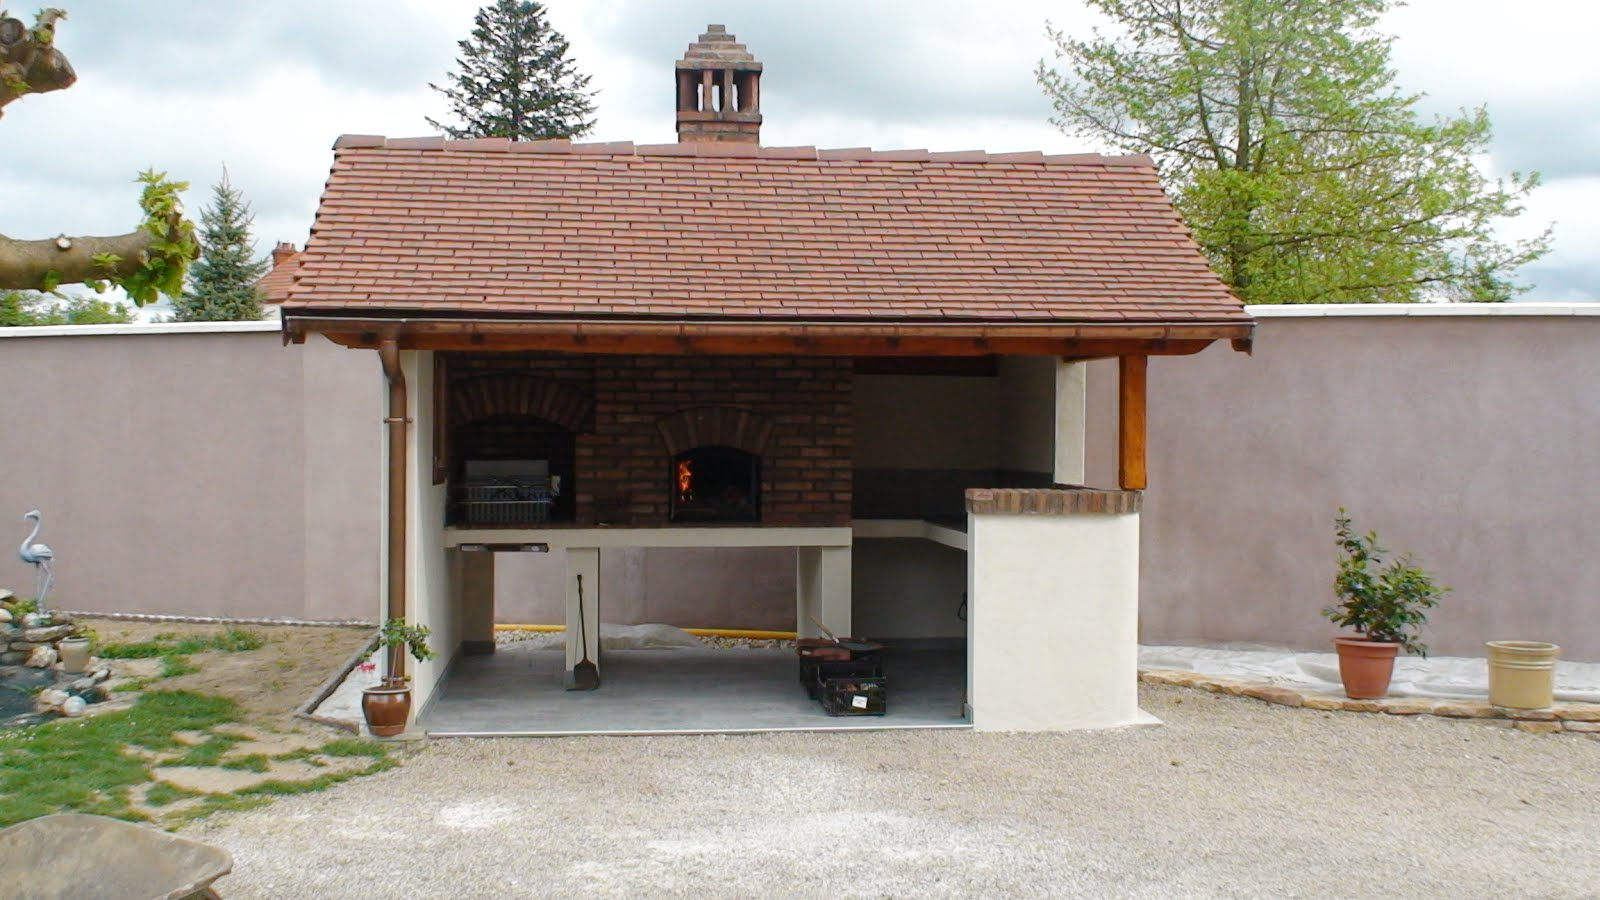 Carrelage exterieur pour barbecue 28 images carrelage for Construire un four a pizza exterieur